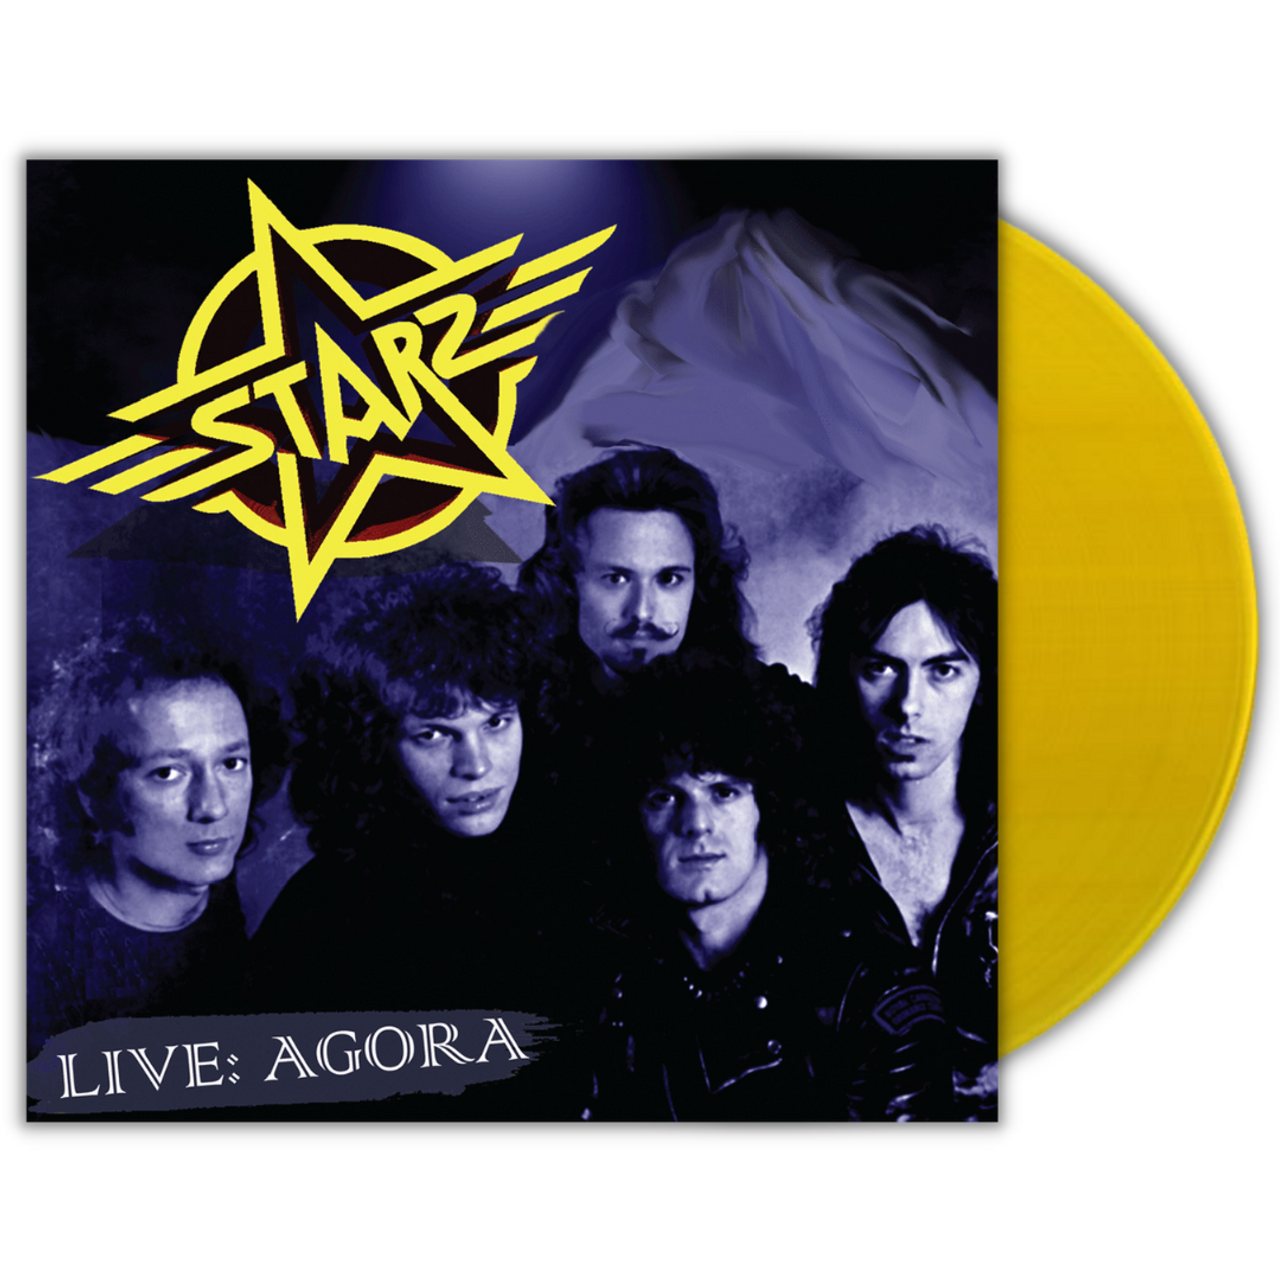 Live: Agora by Starz available on colored yellow vinyl